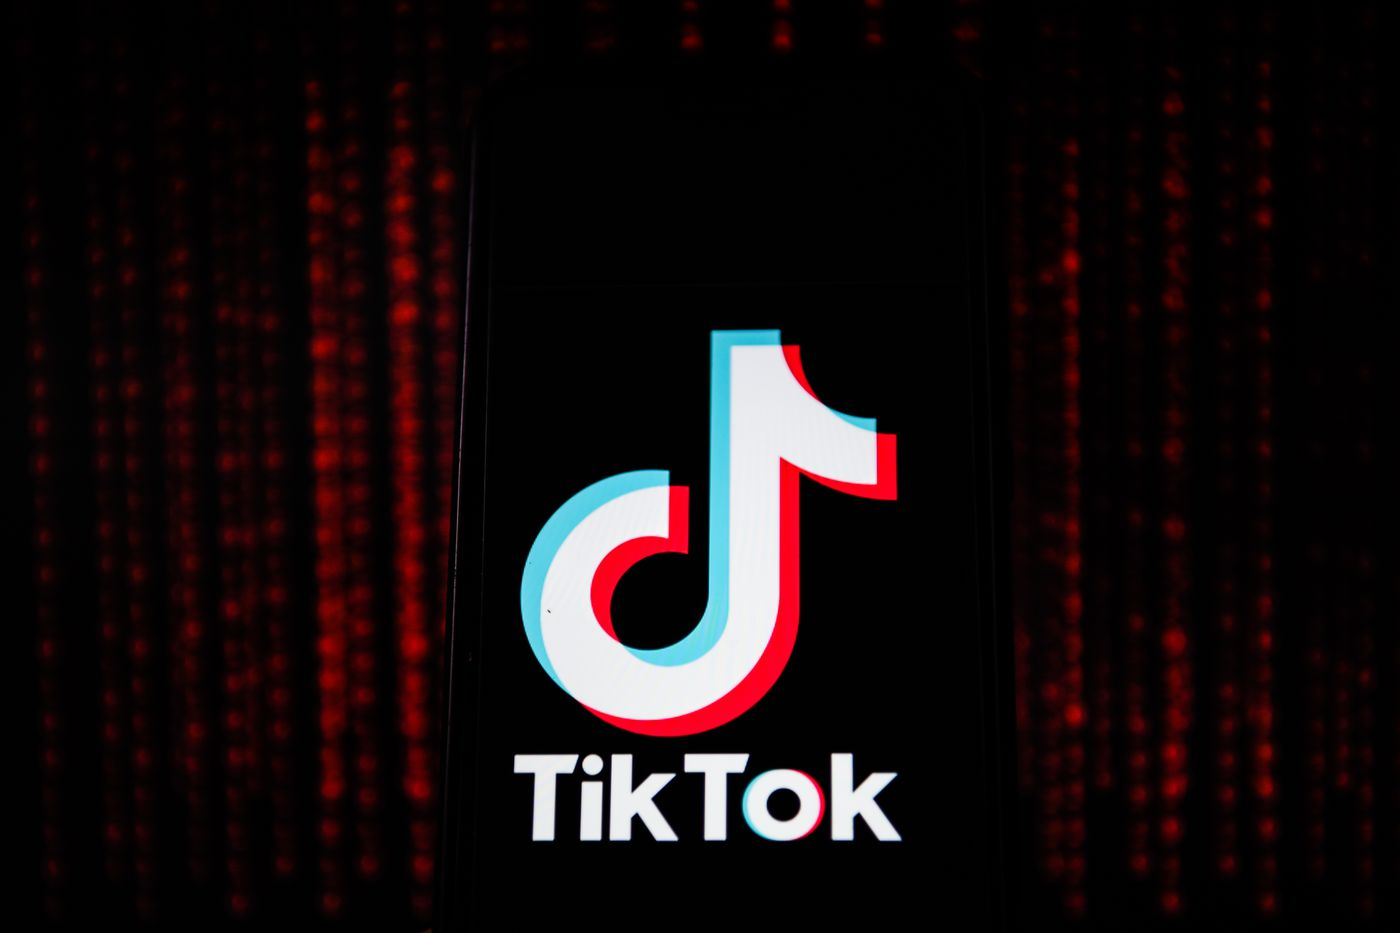 TikTok is letting parents set how much time their kids can spend on the app  - The Verge